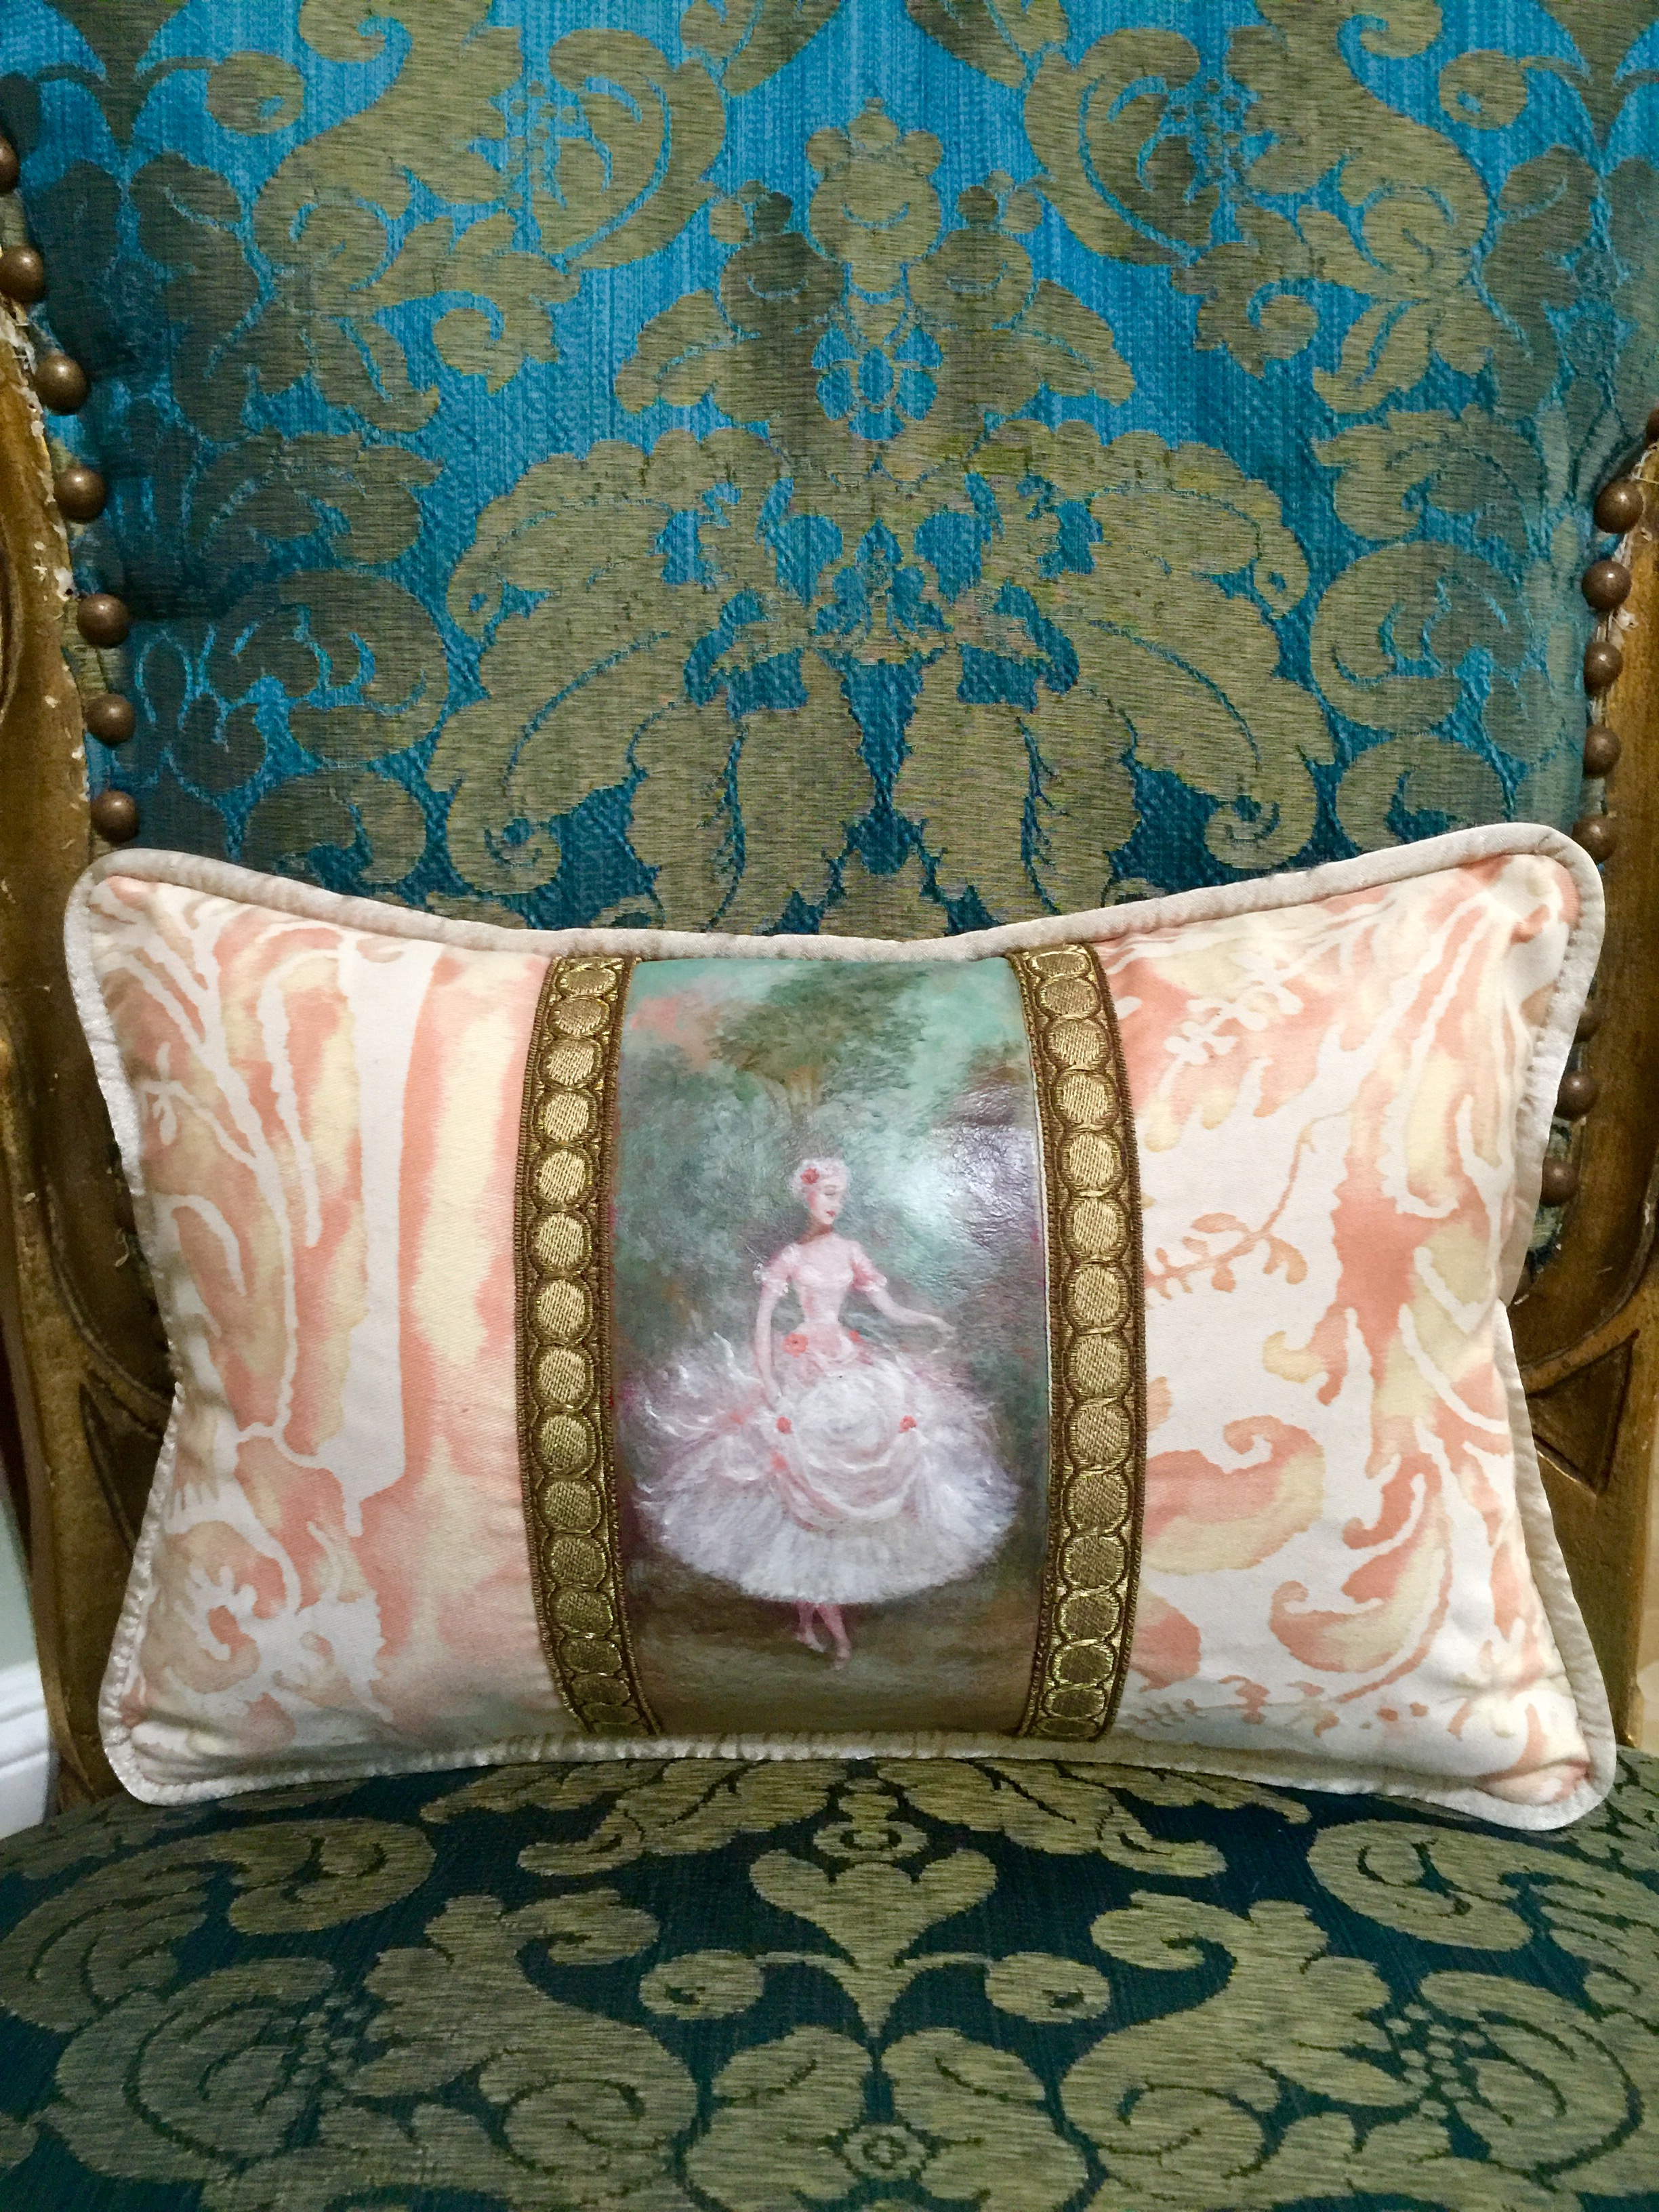 Lady in the Forest Pillow from the Masterpiece Collection by Jennifer Chapman